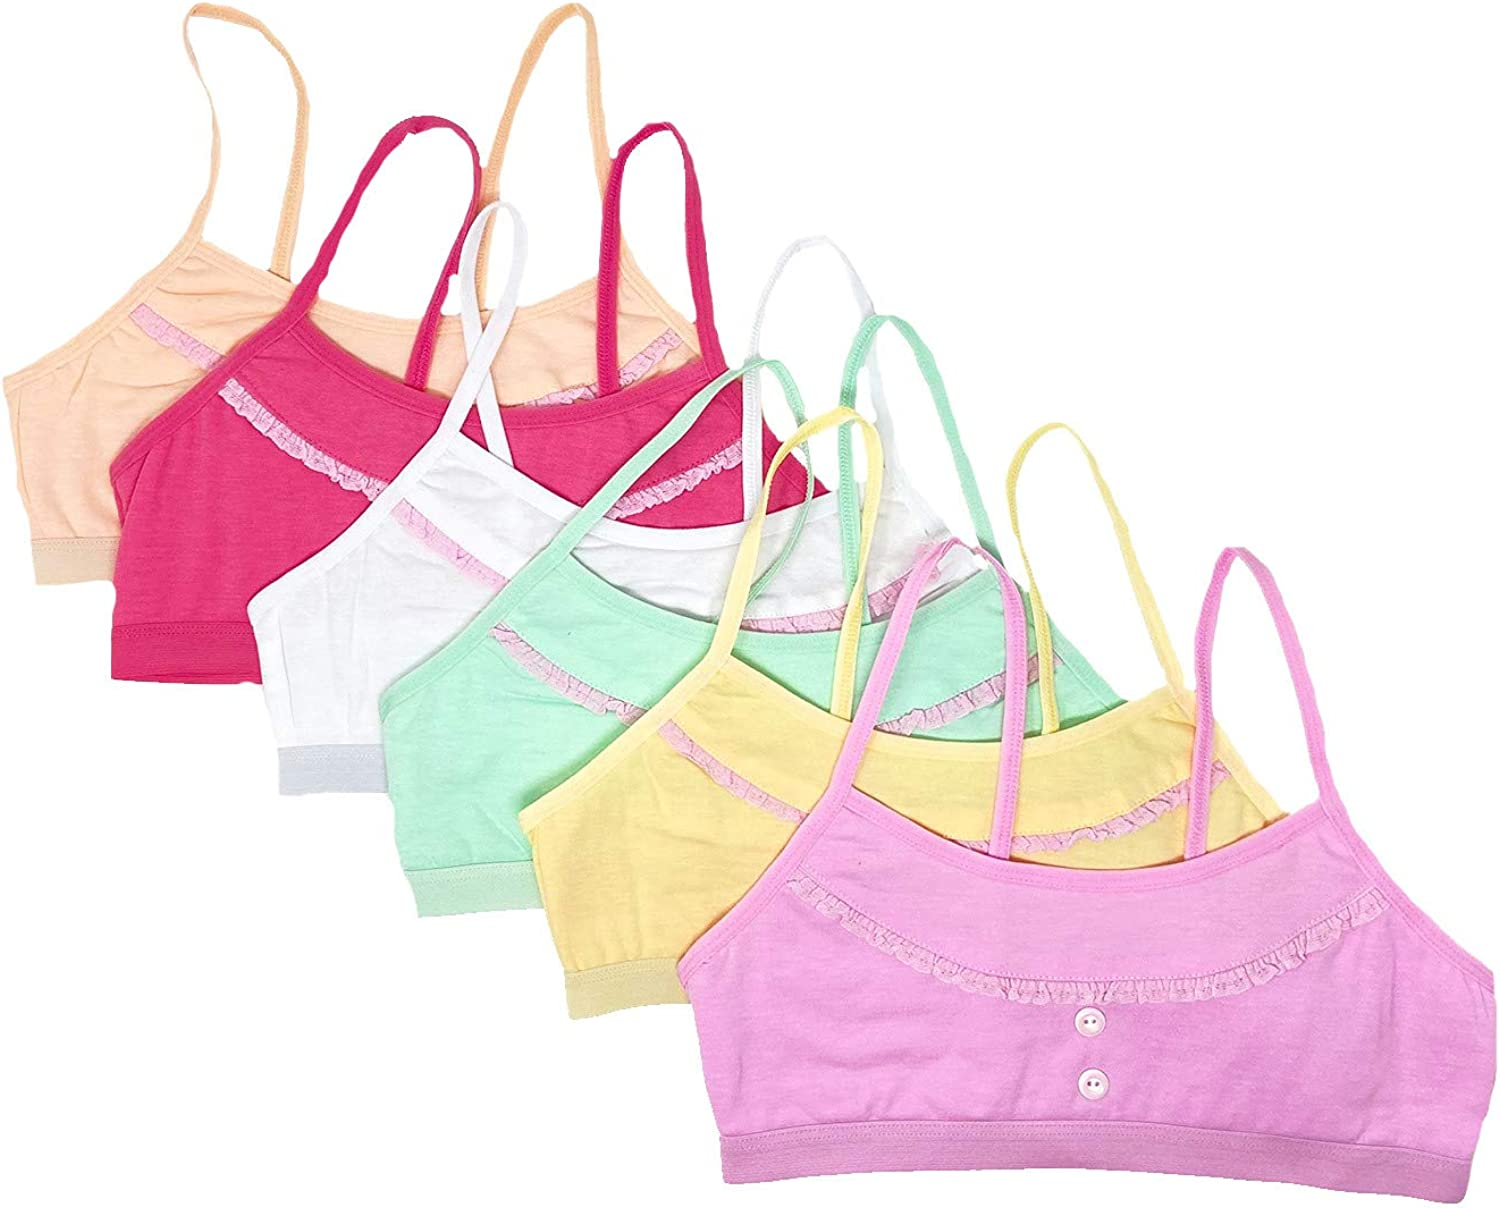 I&S Girl's Spaghetti Adjustable Straps Cute Comfortable Training Bras - Pack of 6 Bras